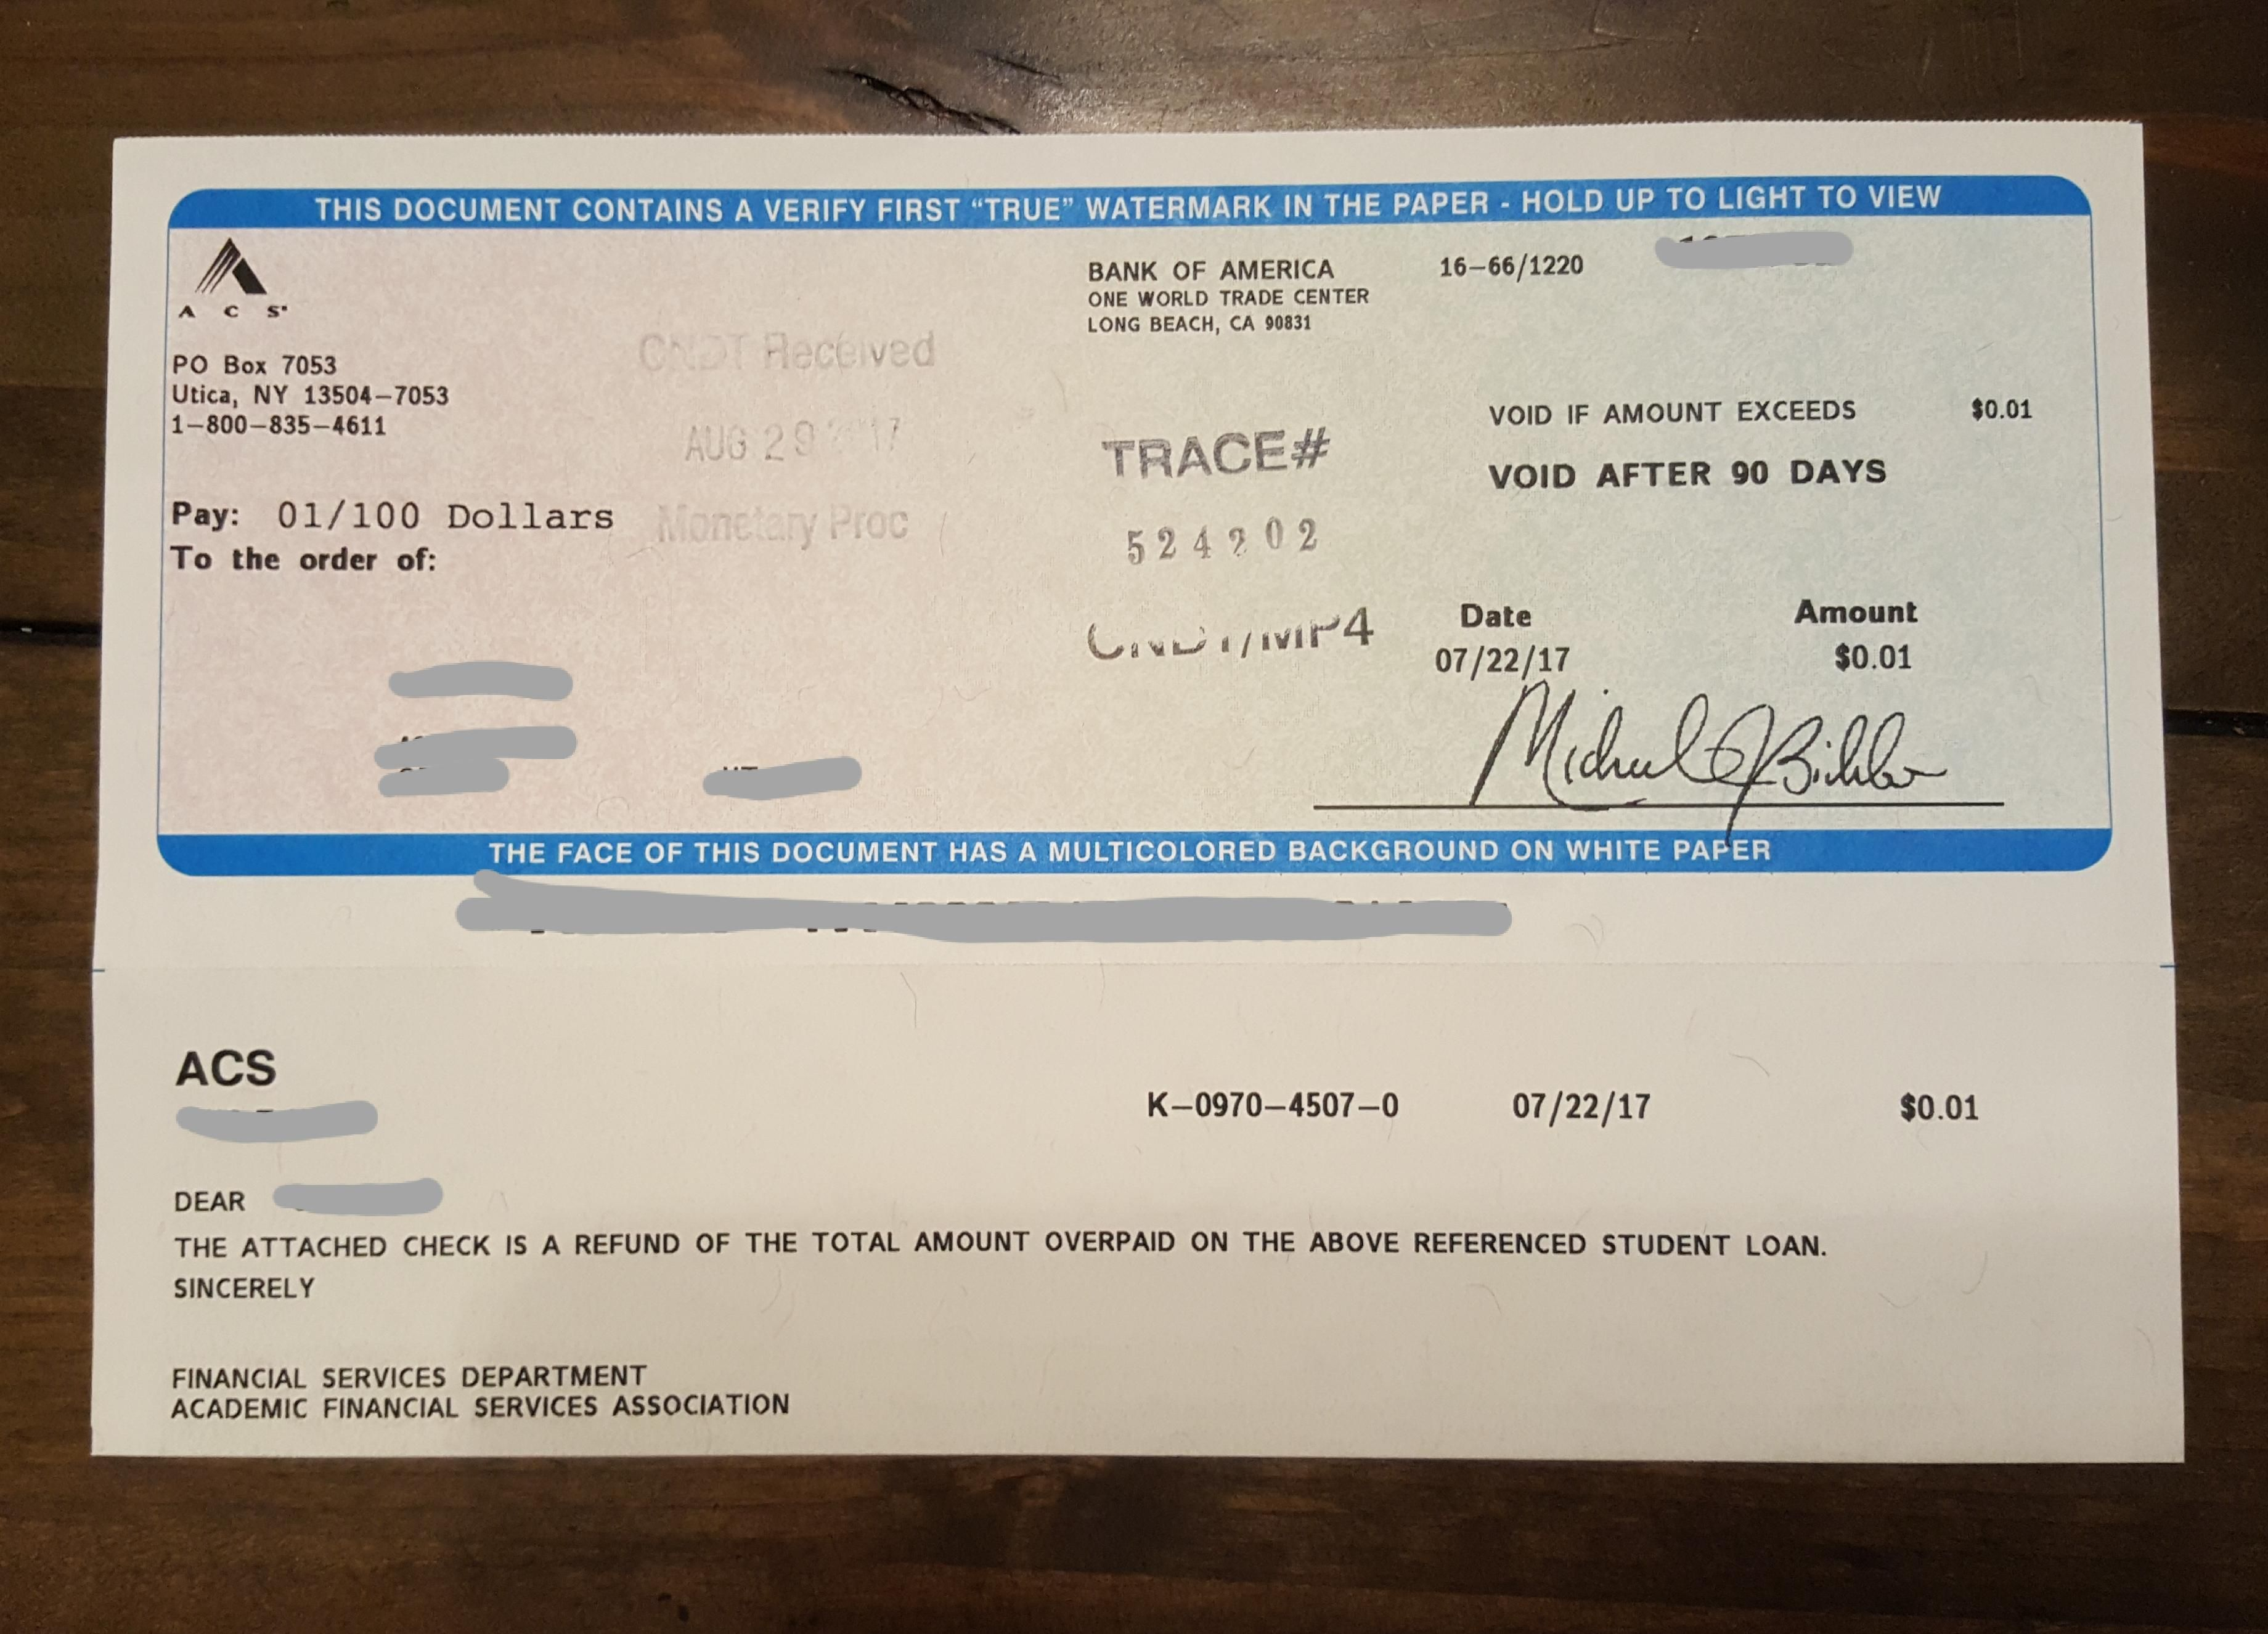 My Wife Just Received A 0 01 Refund Check For A Student Loan That